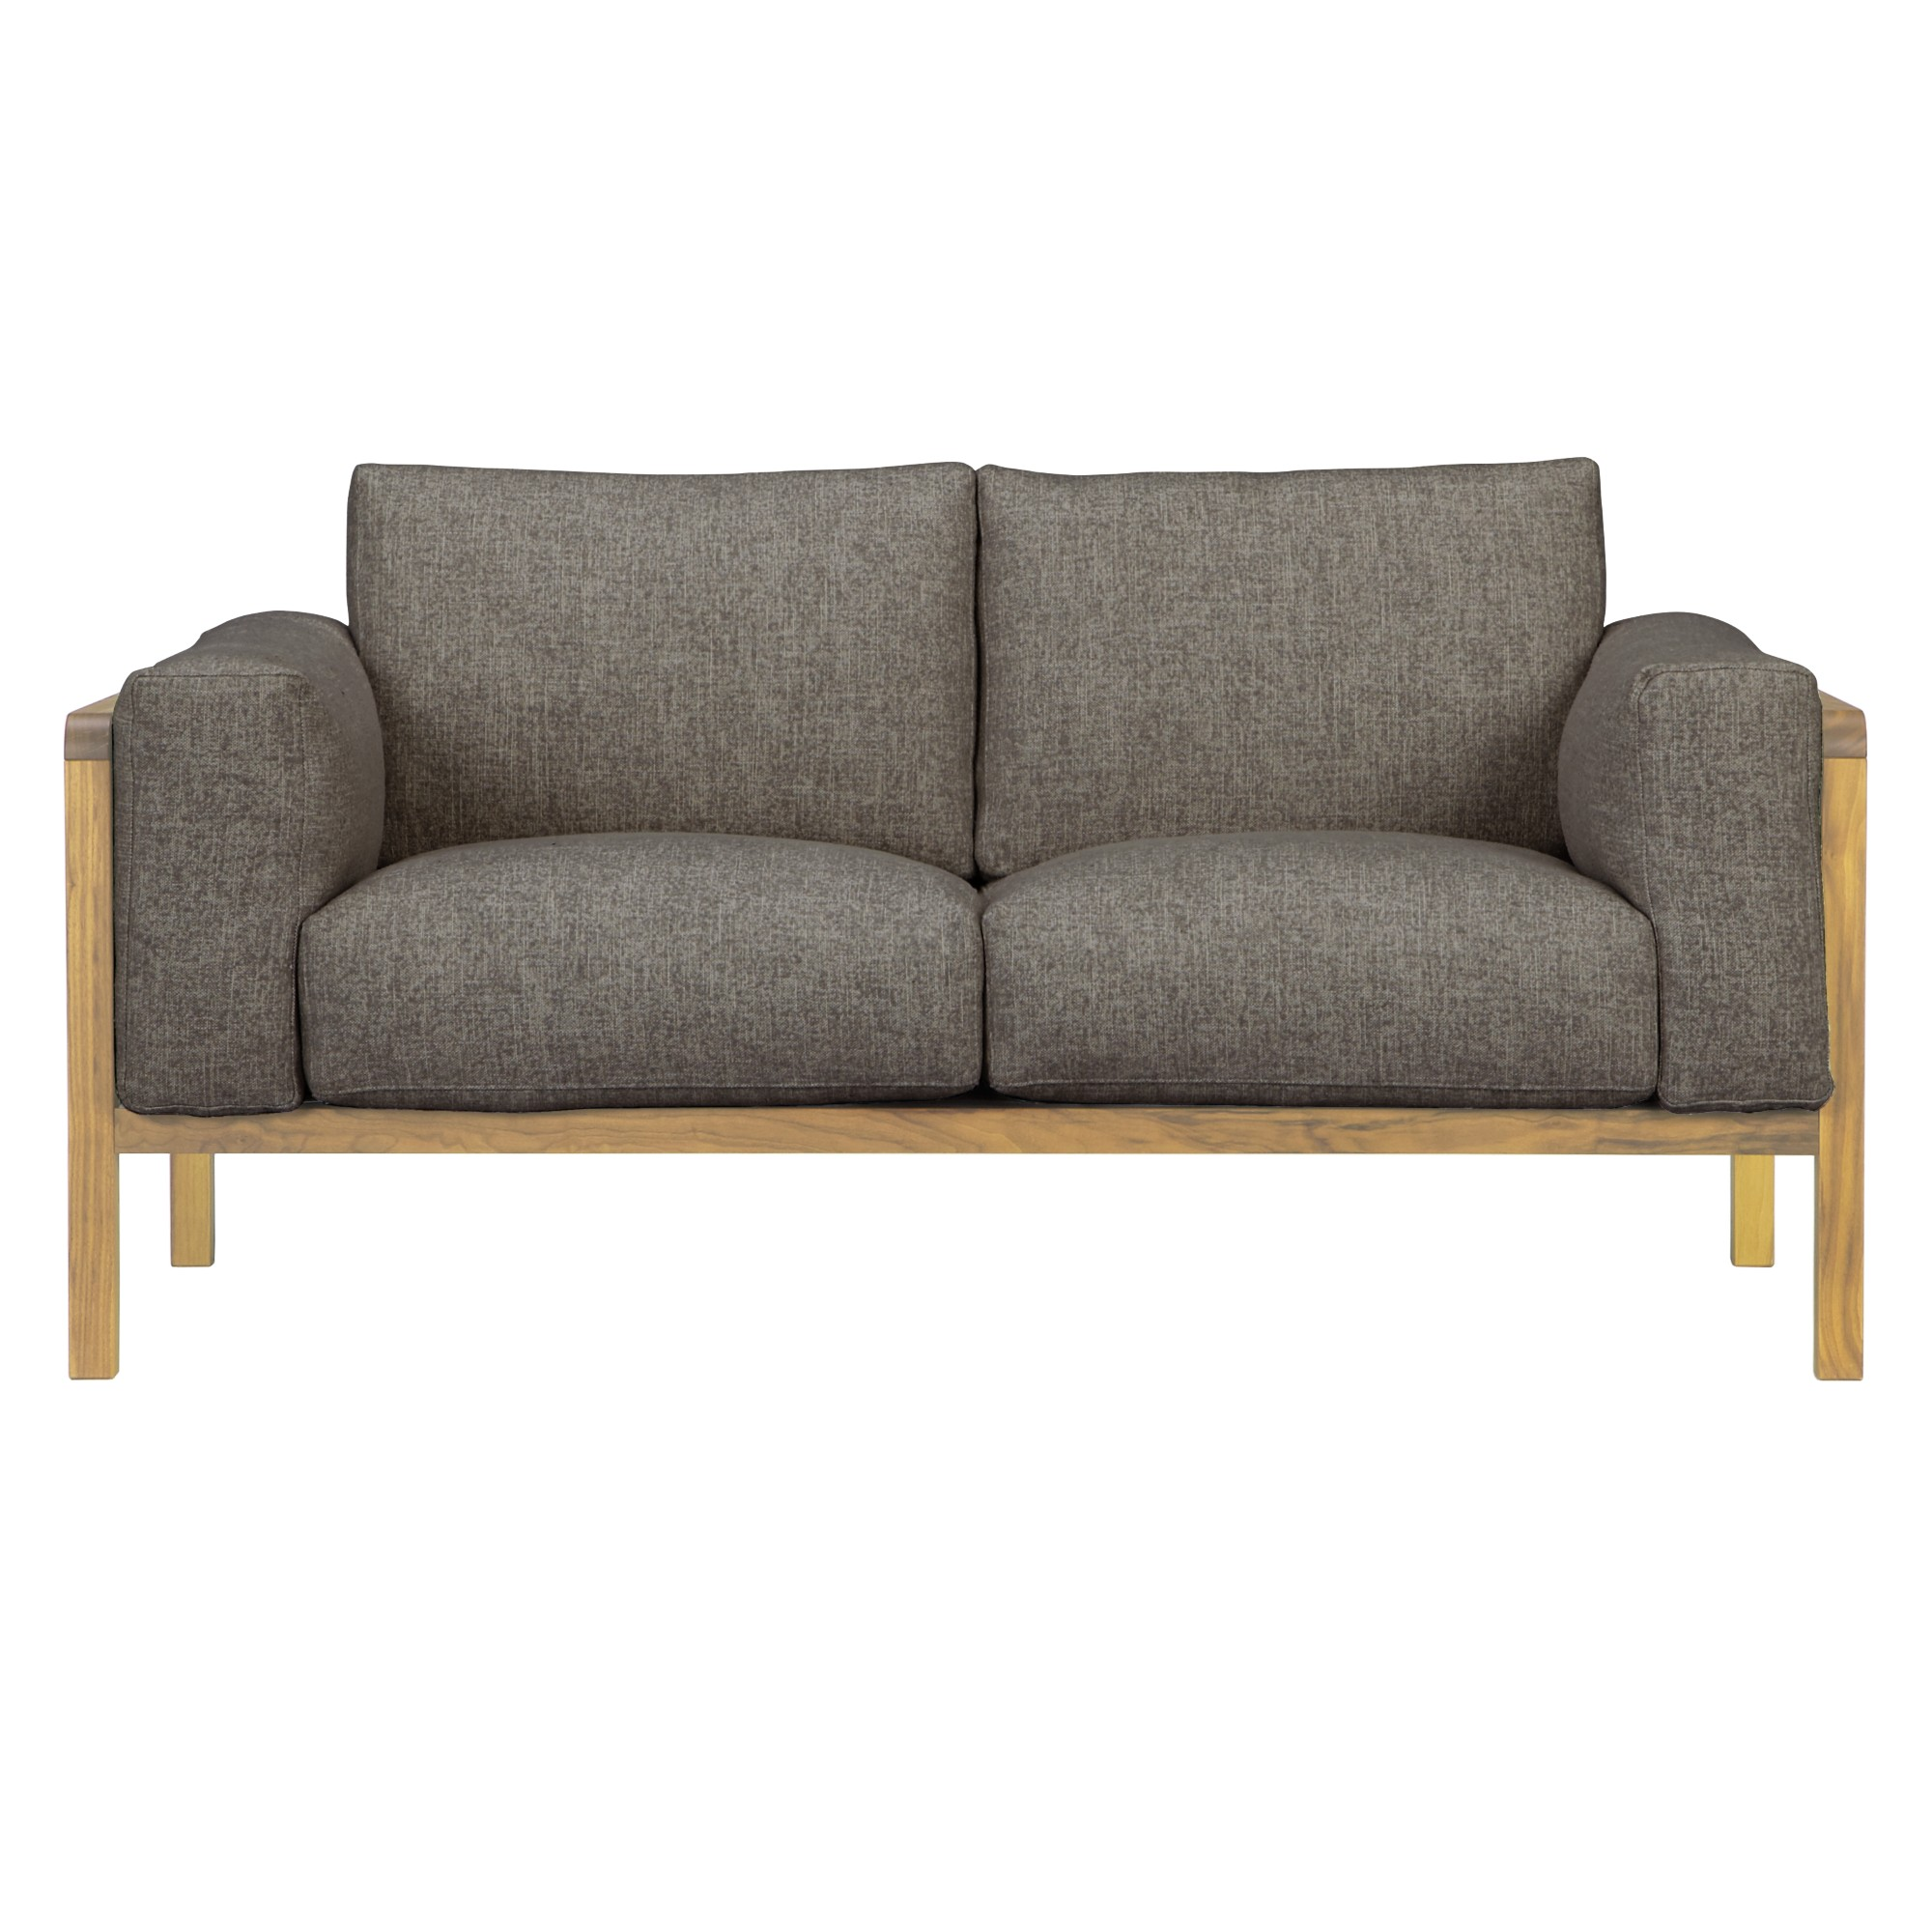 Furia Heming Medium Sofa